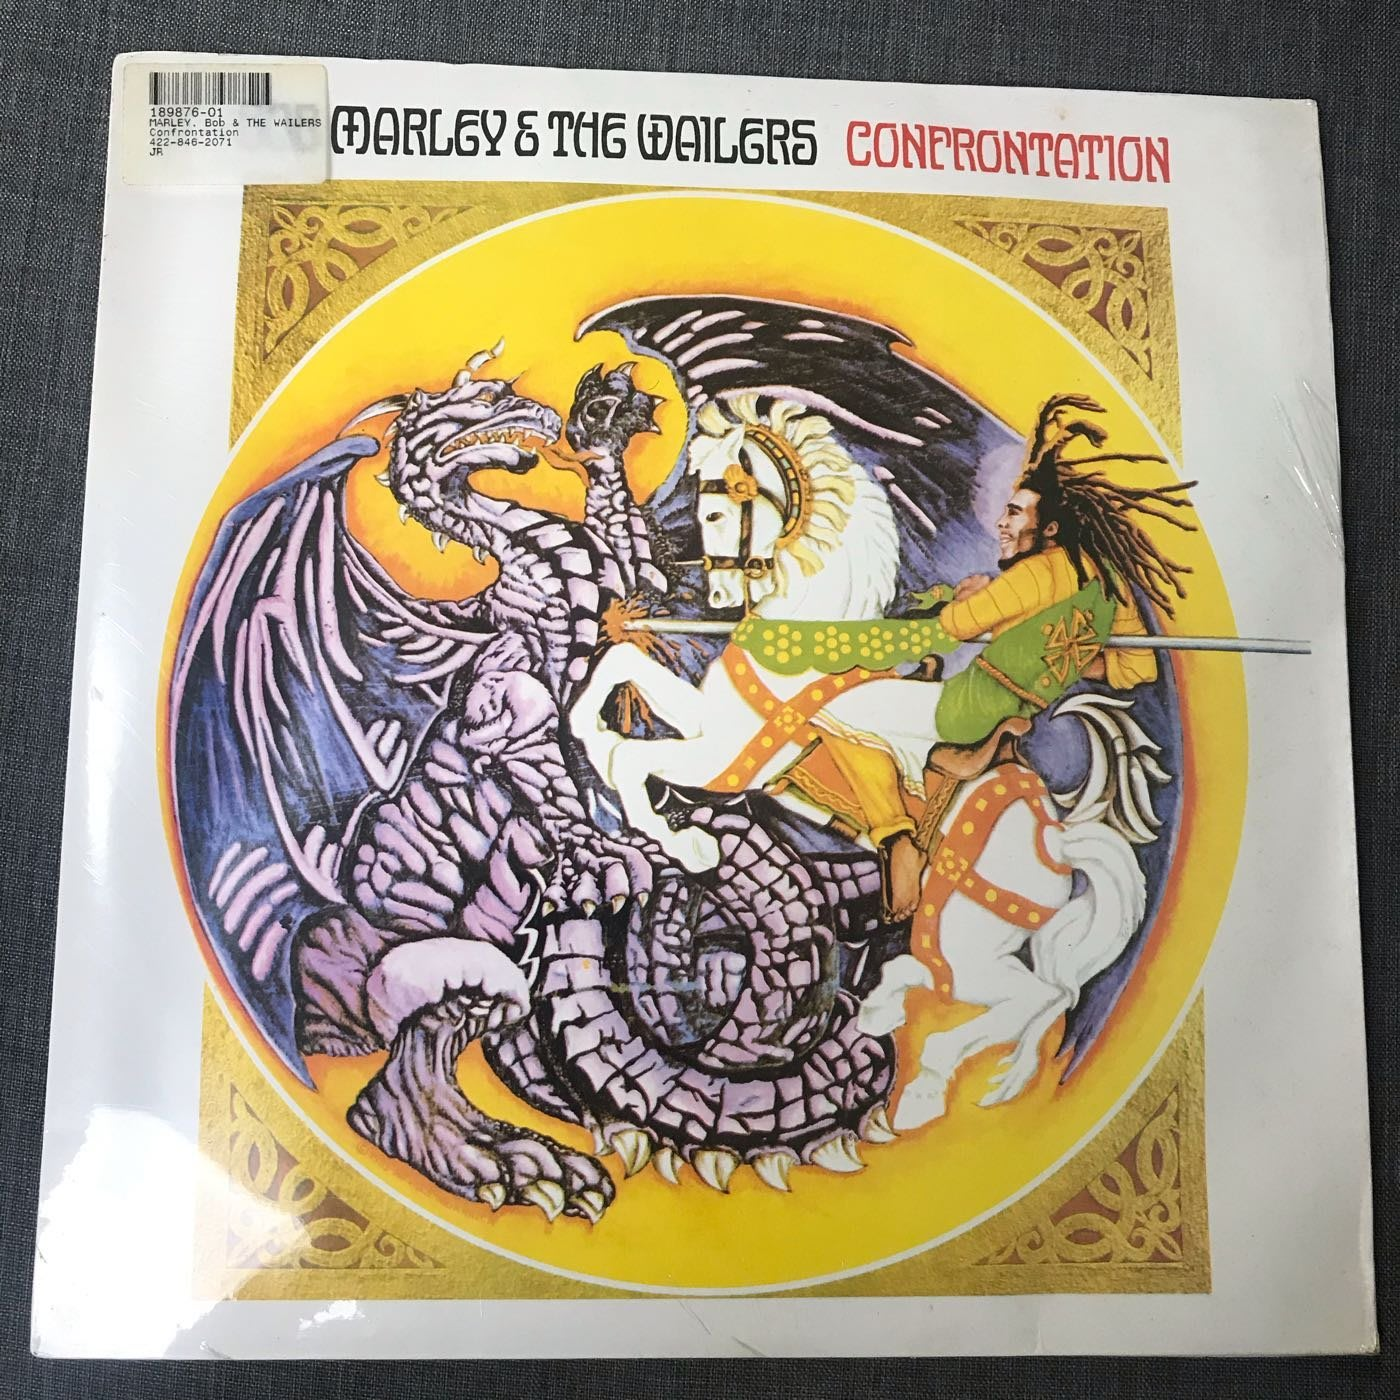 全新 未拆封 Bob Marley & The Wailers - Confrontation 黑膠